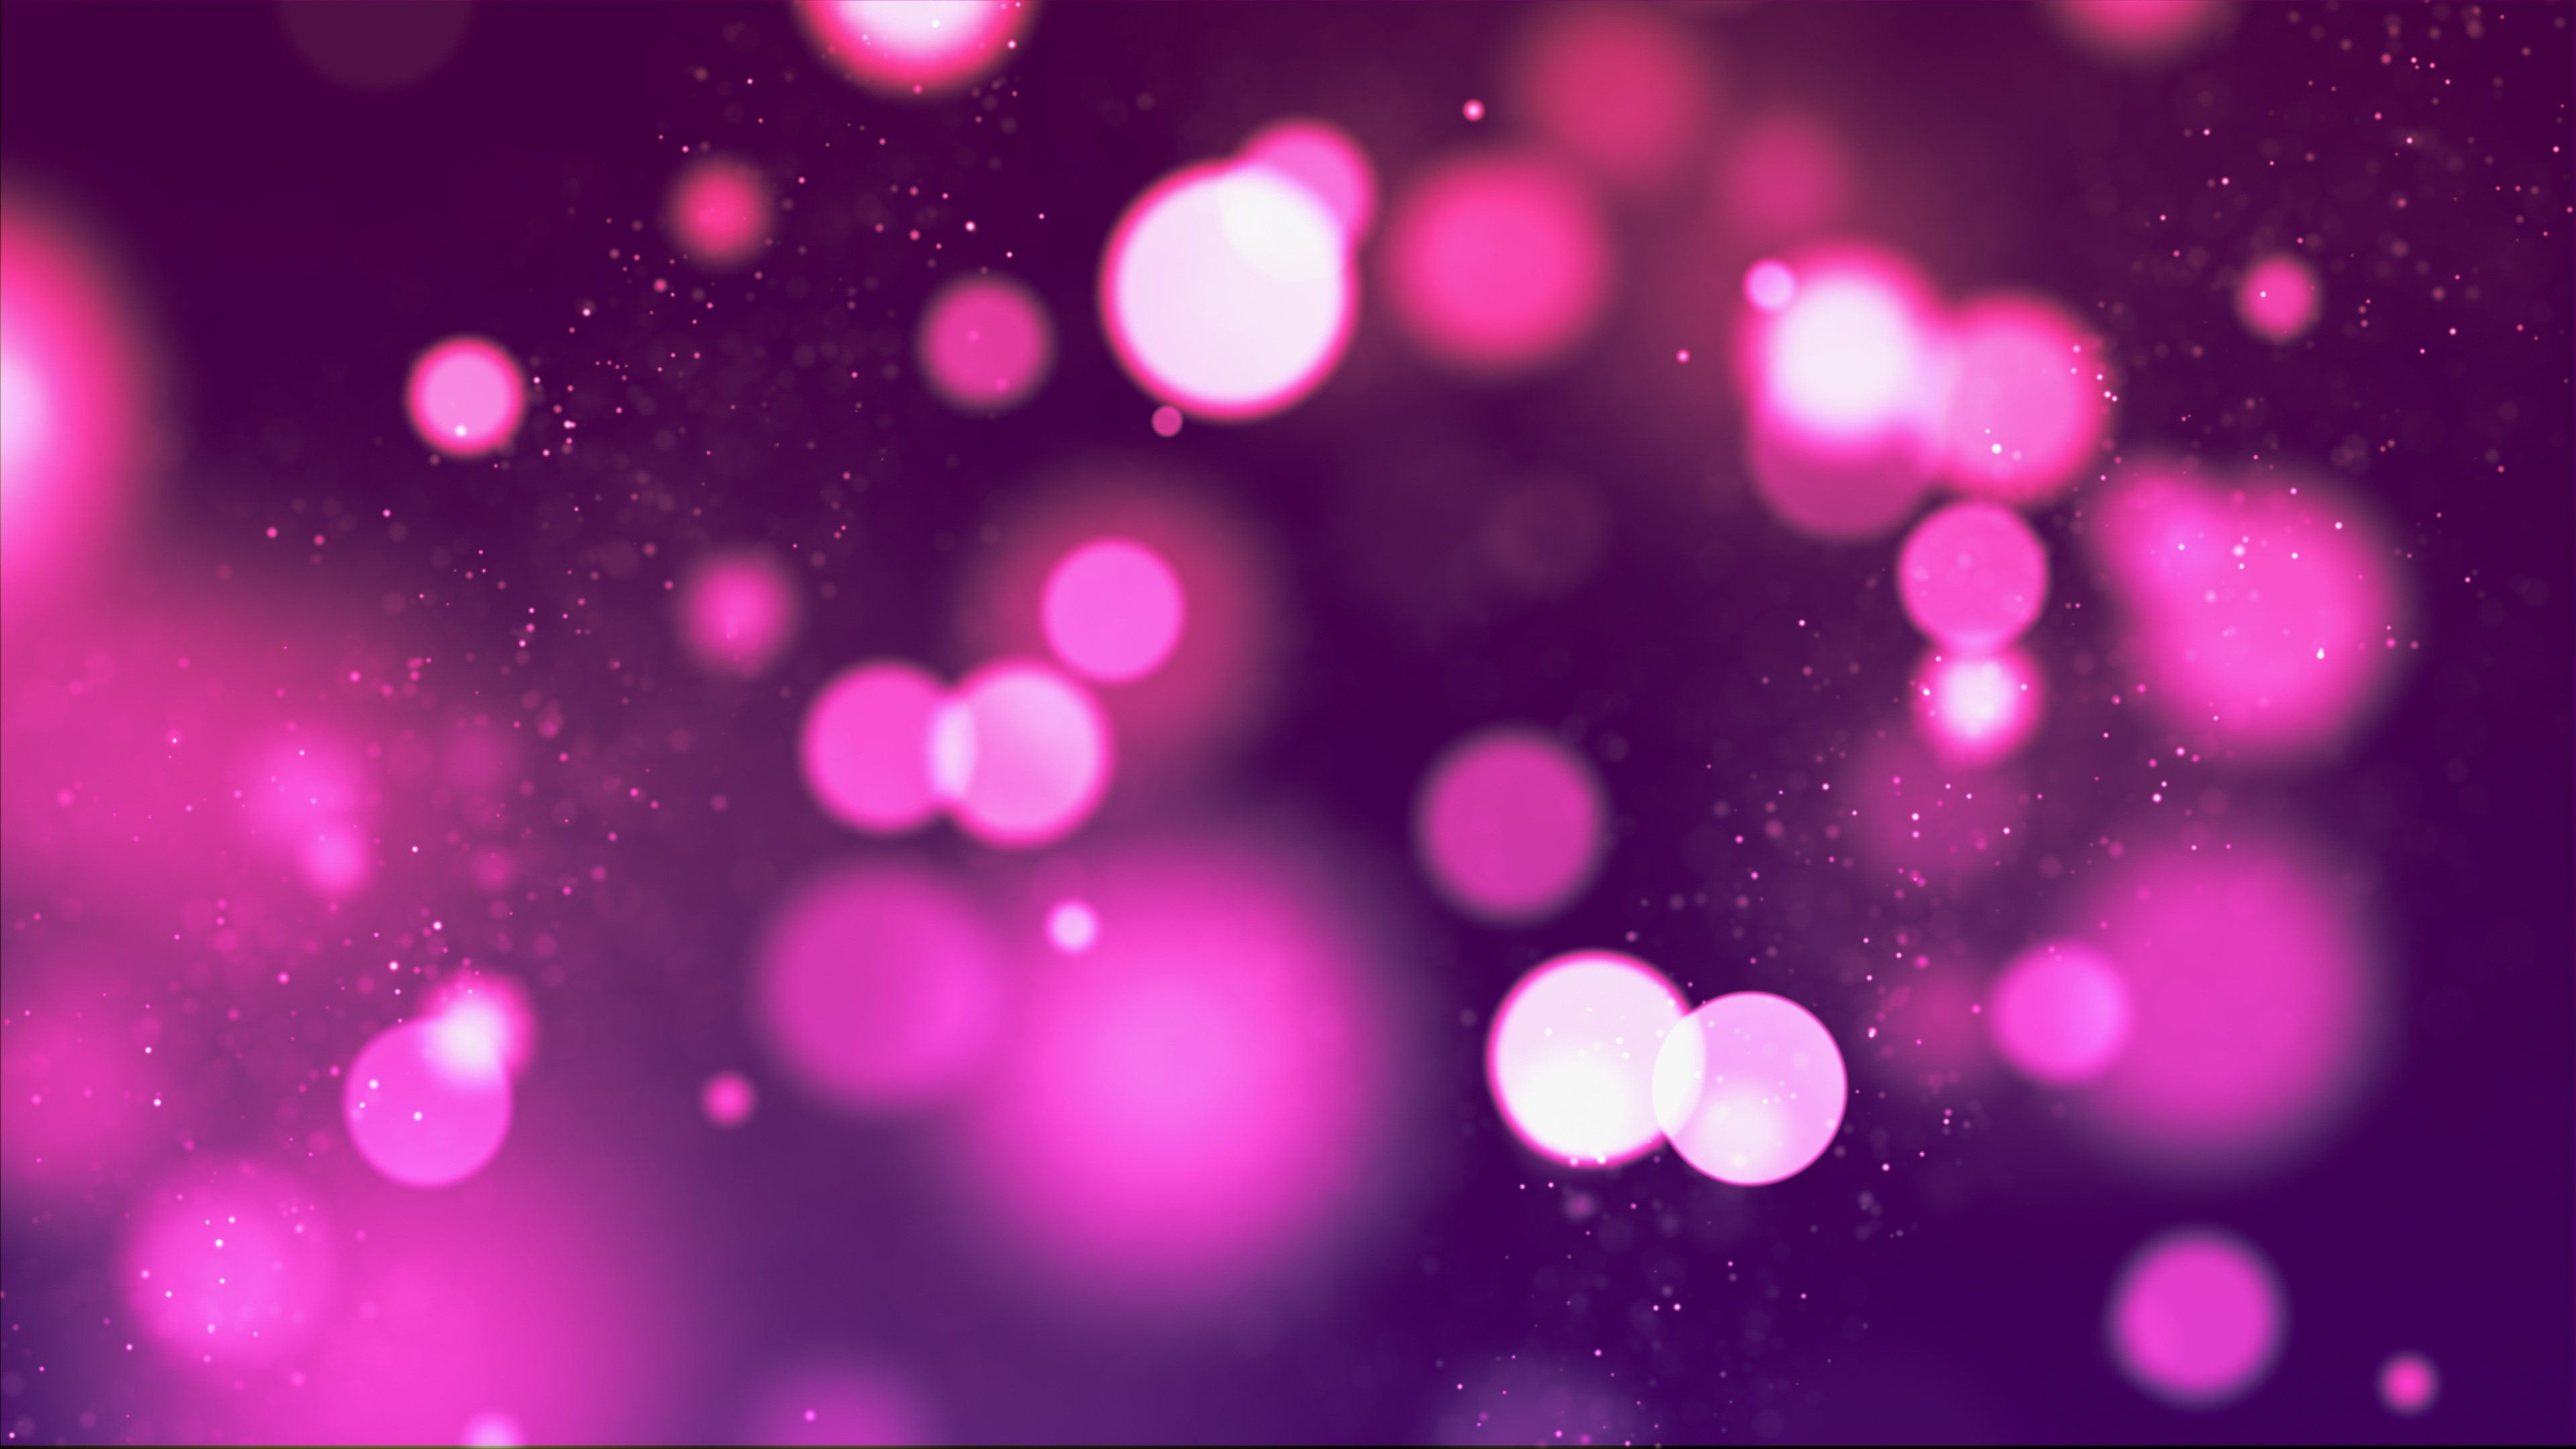 Pink Iphone 6 Wallpaper 1000 Great Purple Background Photos 183 Pexels 183 Free Stock